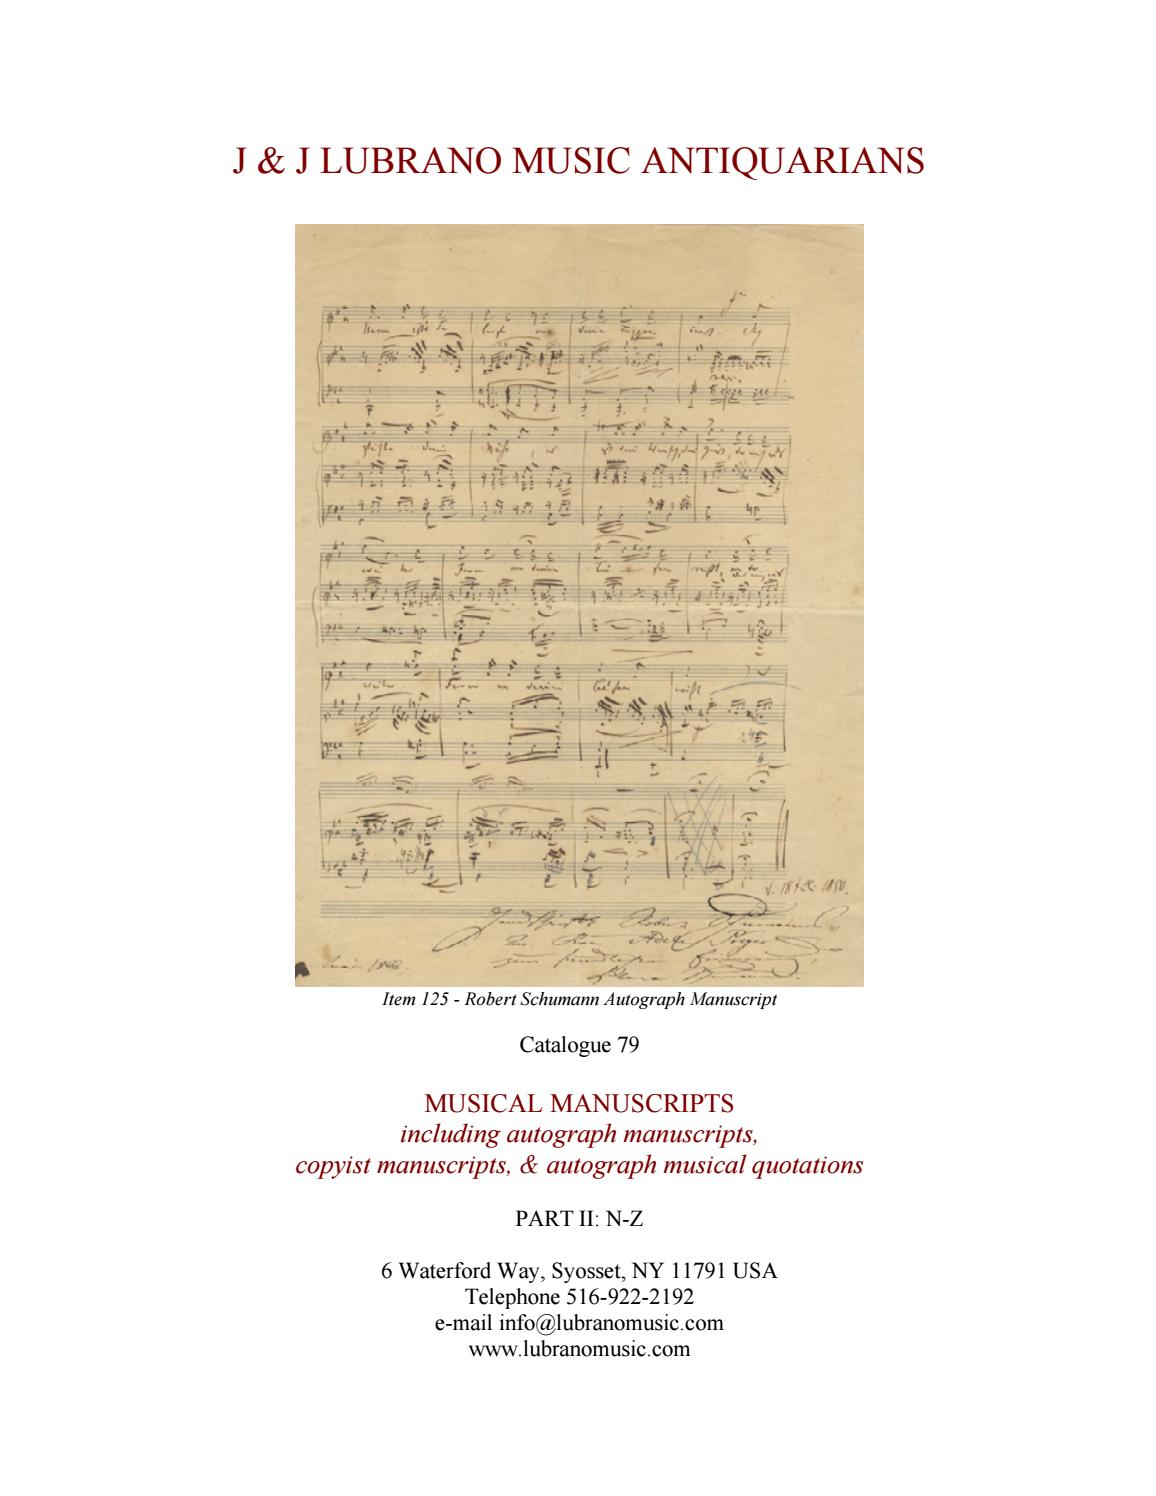 Catalogue 79 - MUSICAL MANUSCRIPTS, Part II: N-Z by J & J